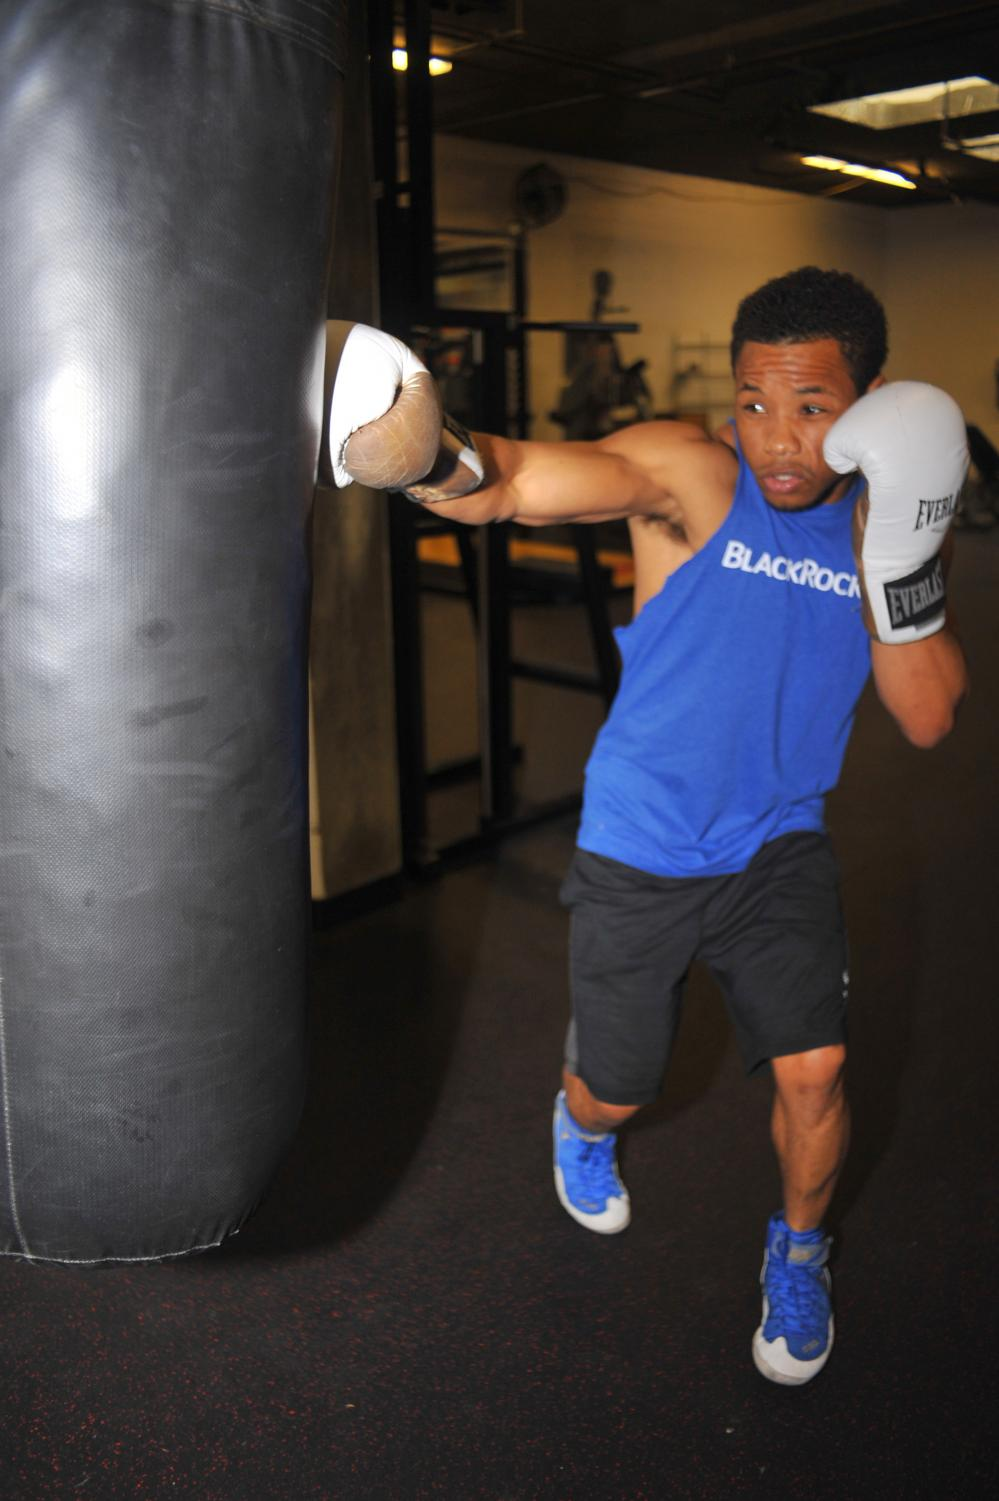 Professional welterweight boxer Karim Mayfield delivers a right straight to a heavy bag in the 3rd Street Gym in San Francisco on Thursday.